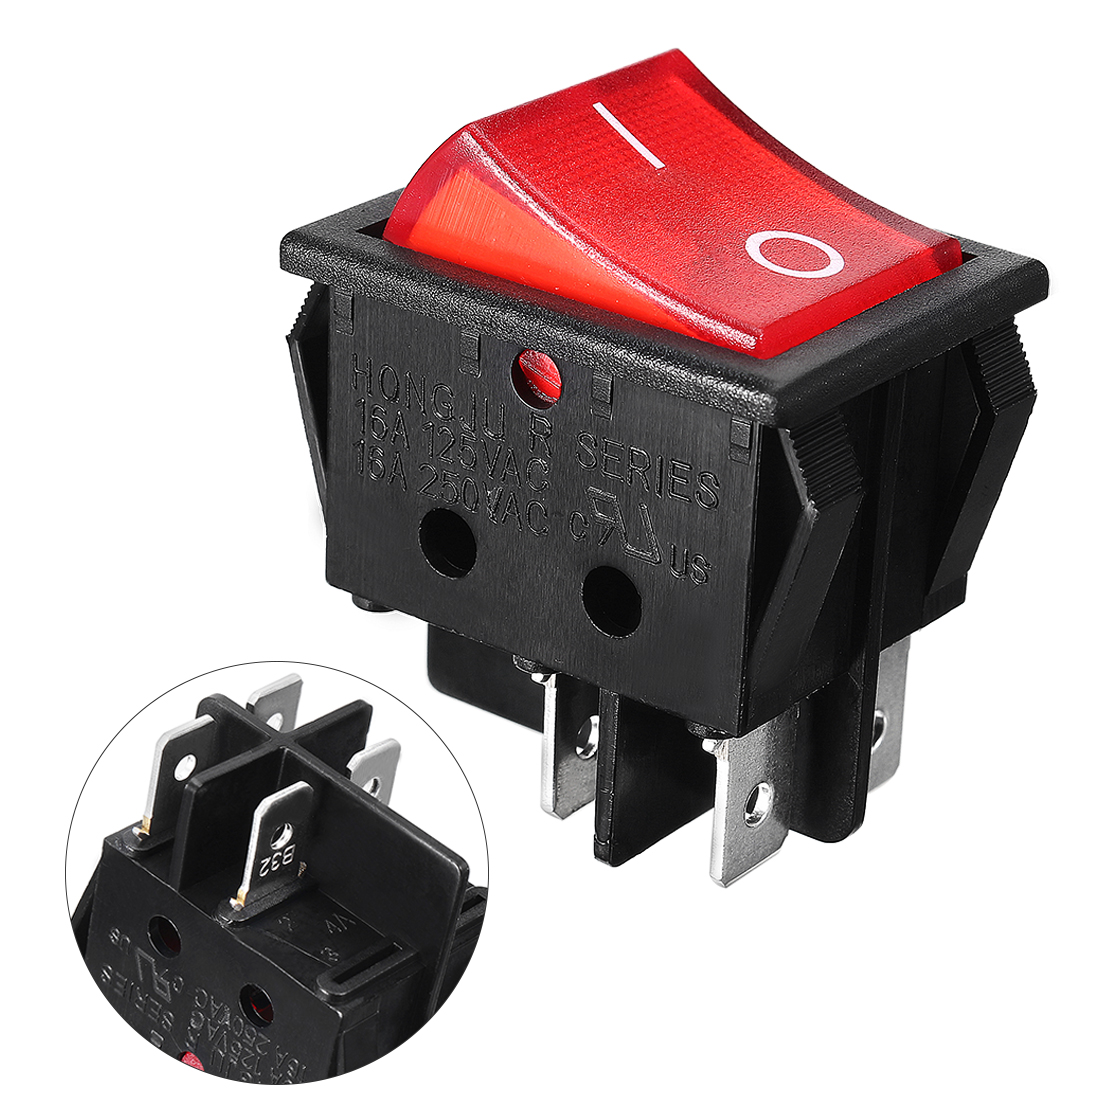 AC 250V 16A Red Light DPST ON/OFF Snap in Boat Rocker Switch